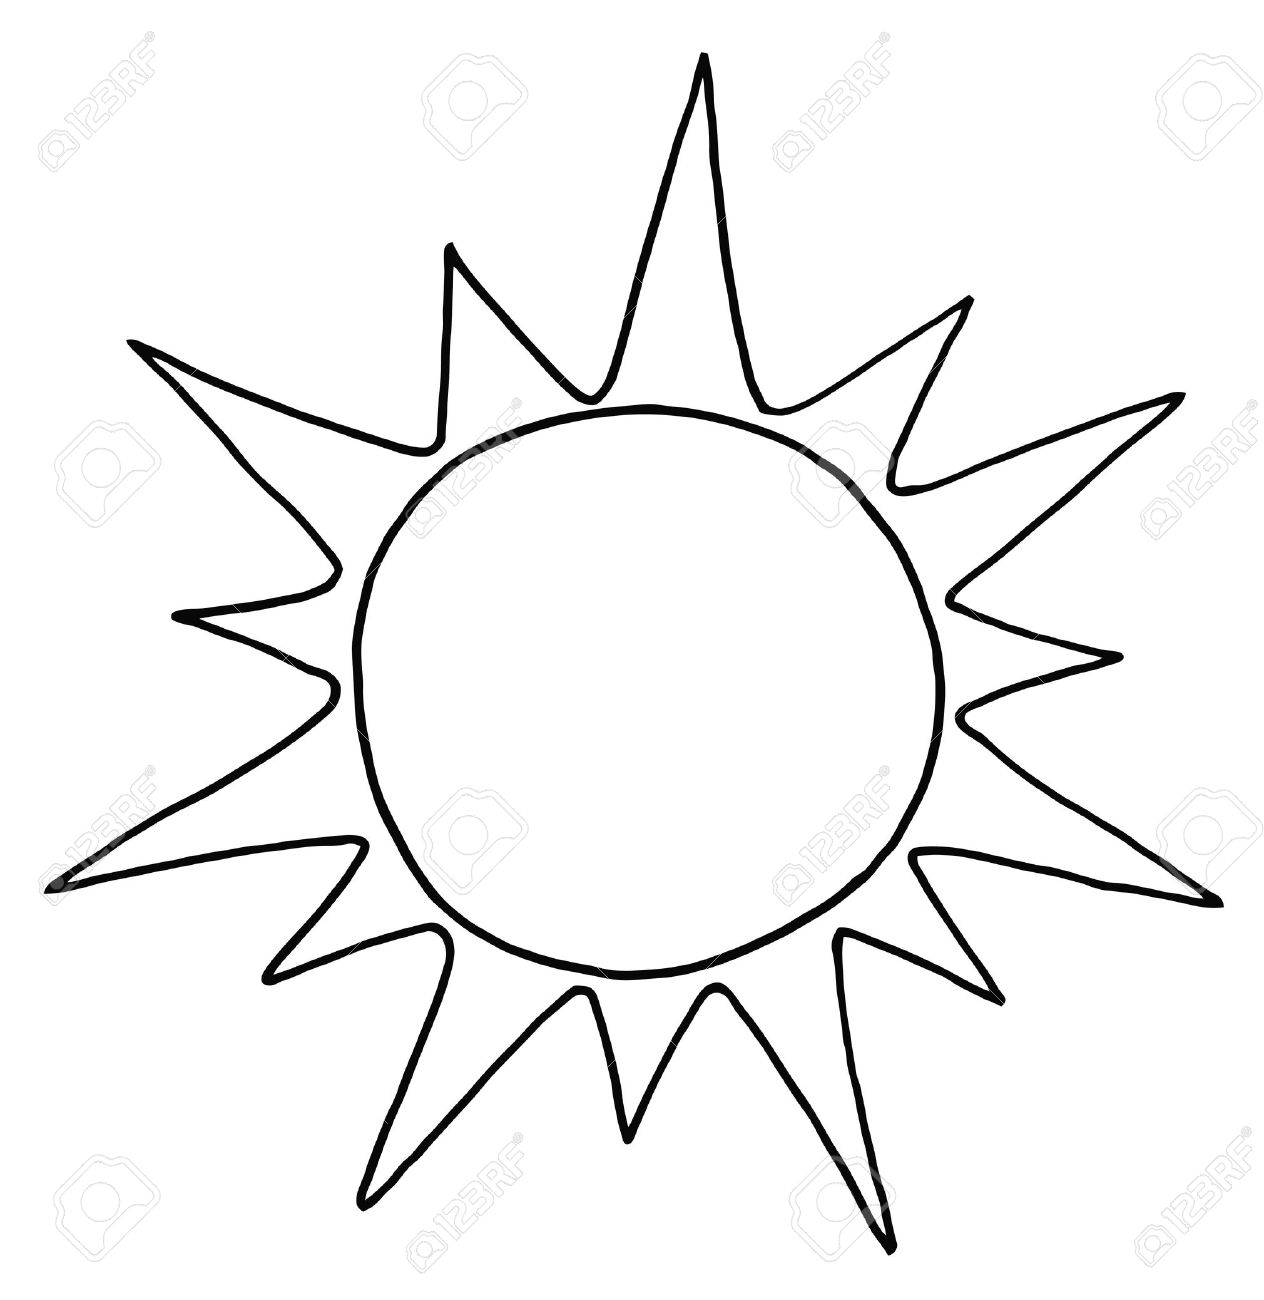 outlined summer sun royalty free cliparts vectors and stock rh 123rf com black and white sun clip art free black and white sun clip art free